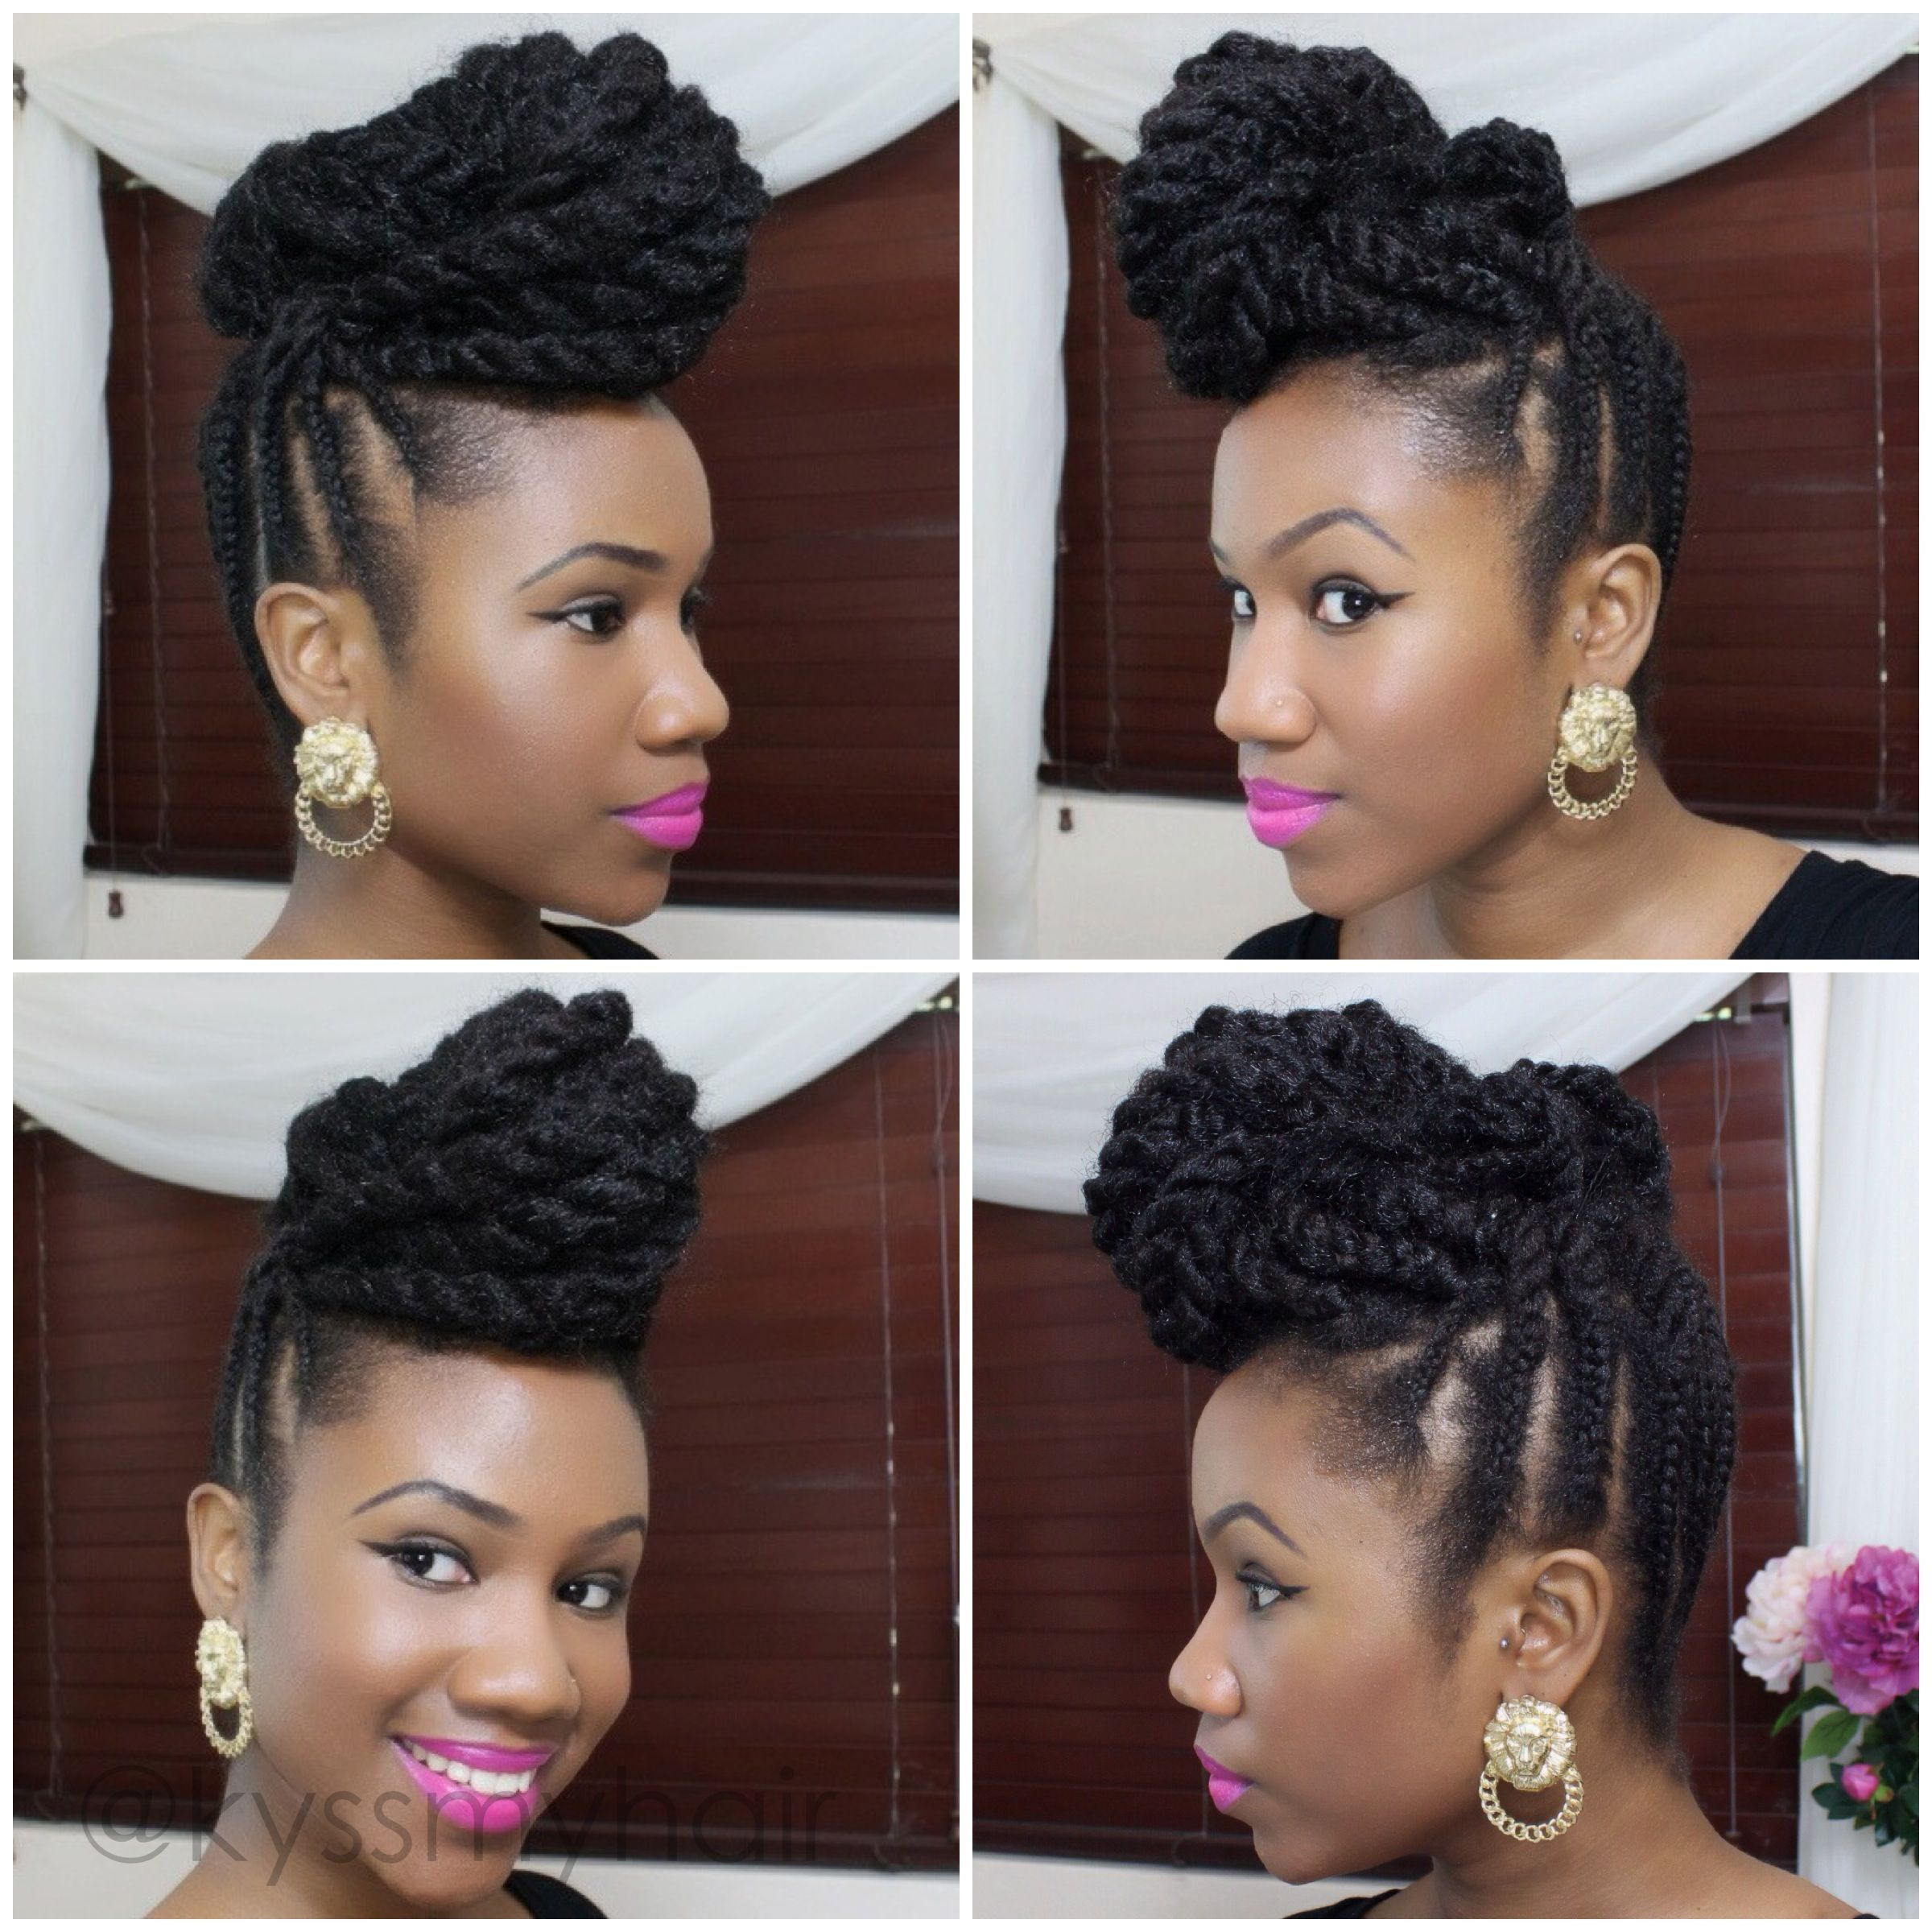 Braided Updo on Natural Hair using Marley Hair Kyss My Hair